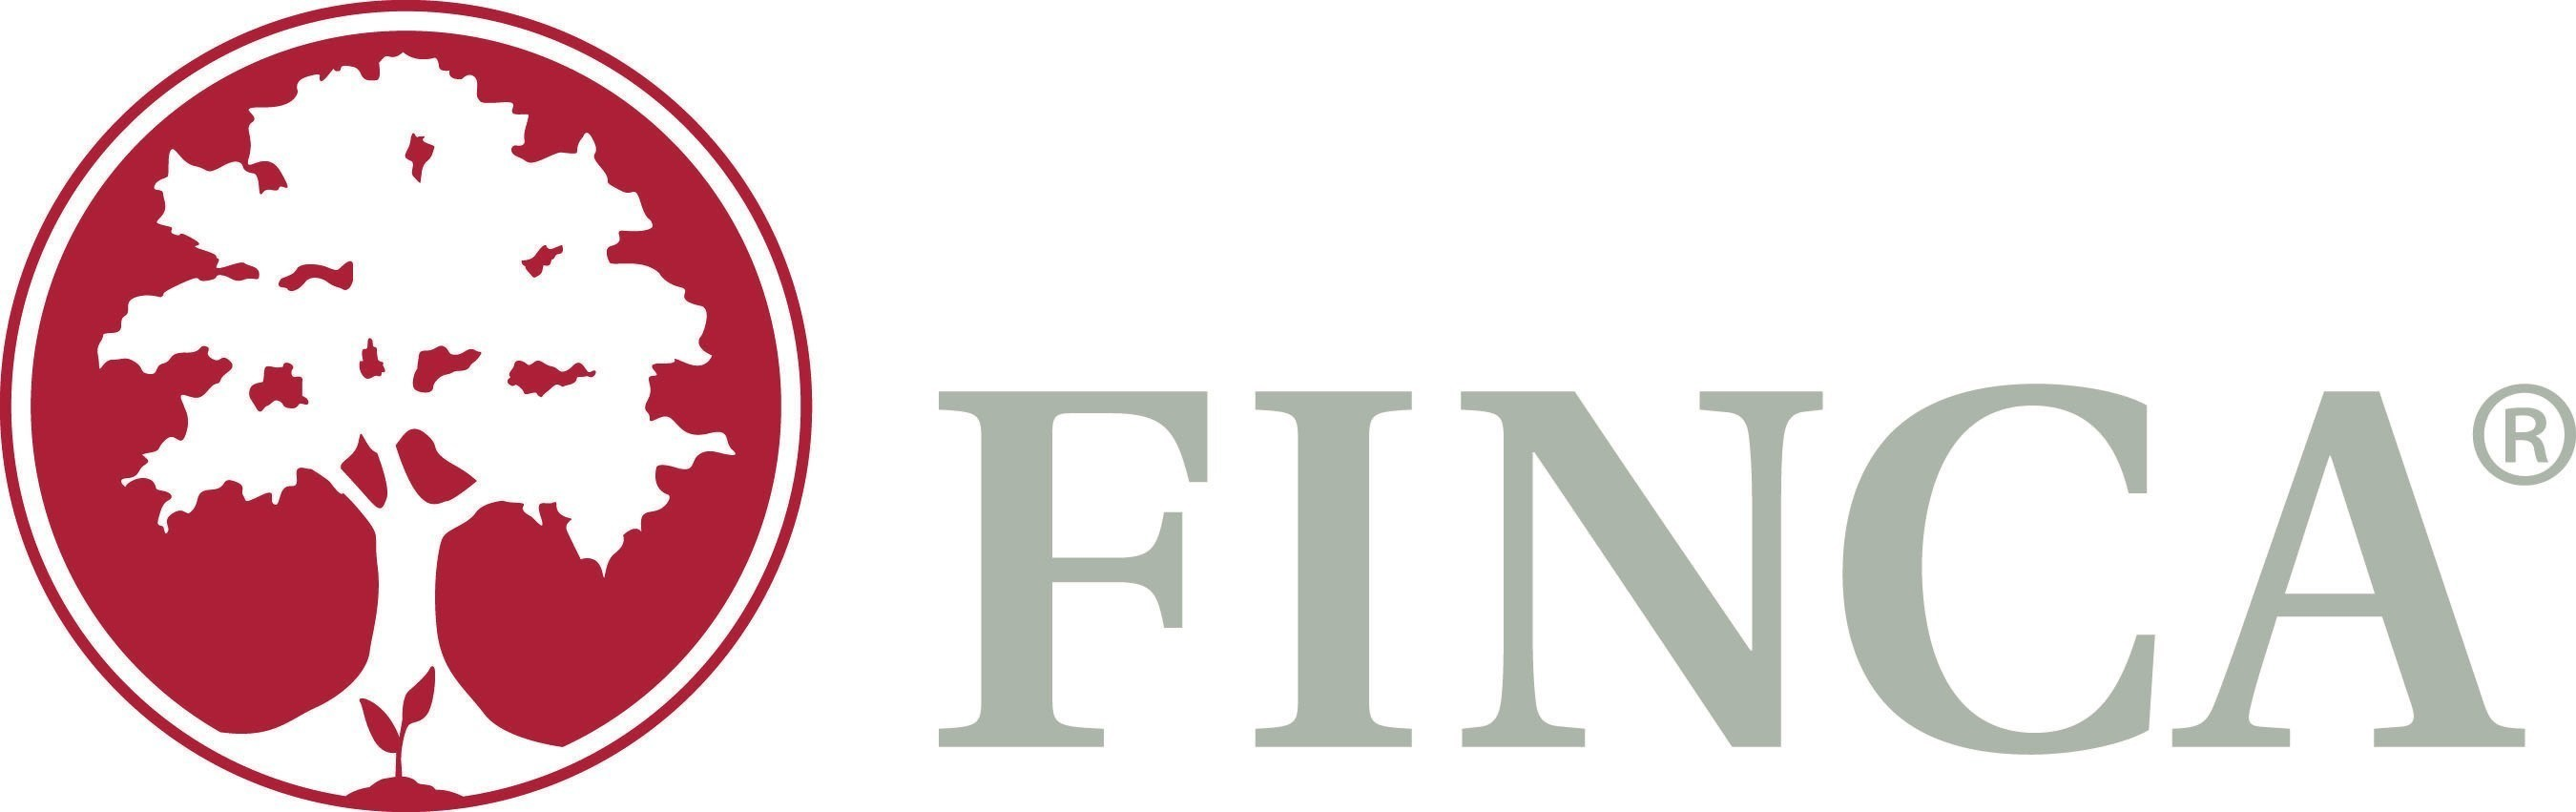 FINCA's mission is to alleviate poverty through lasting solutions that help people build assets, create ...